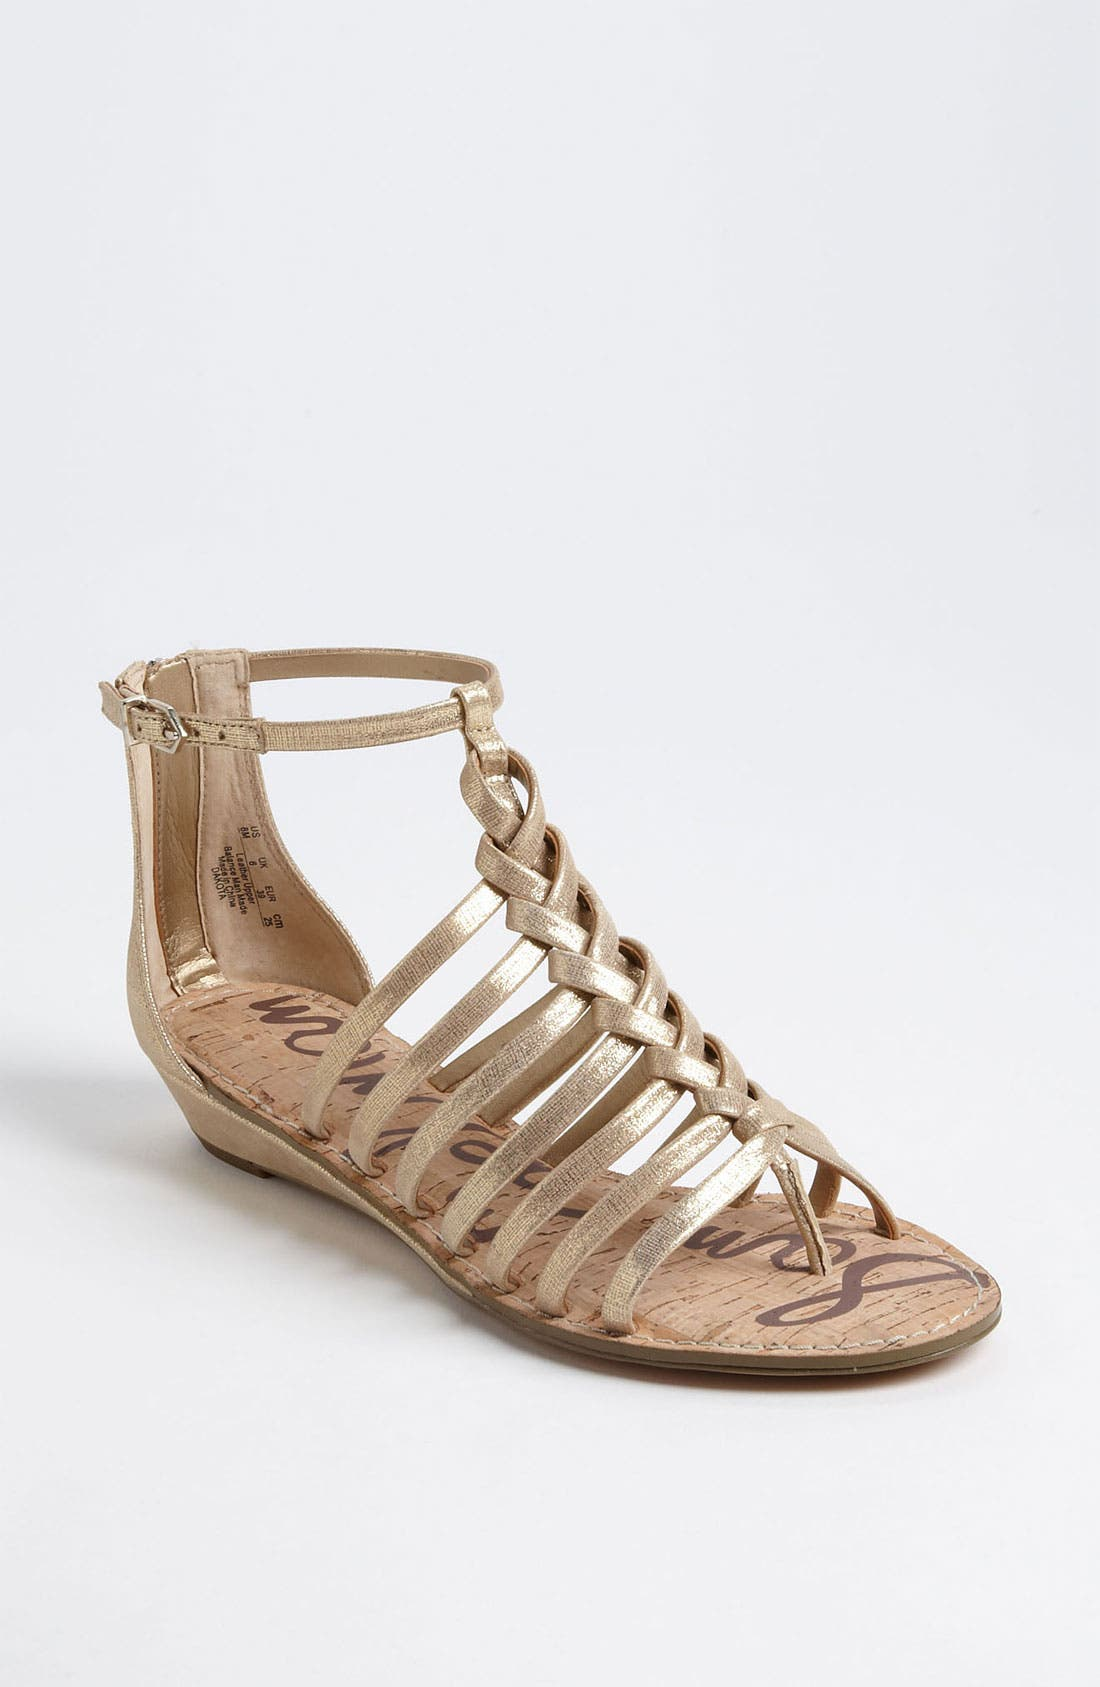 Alternate Image 1 Selected - Sam Edelman 'Dakota' Sandal